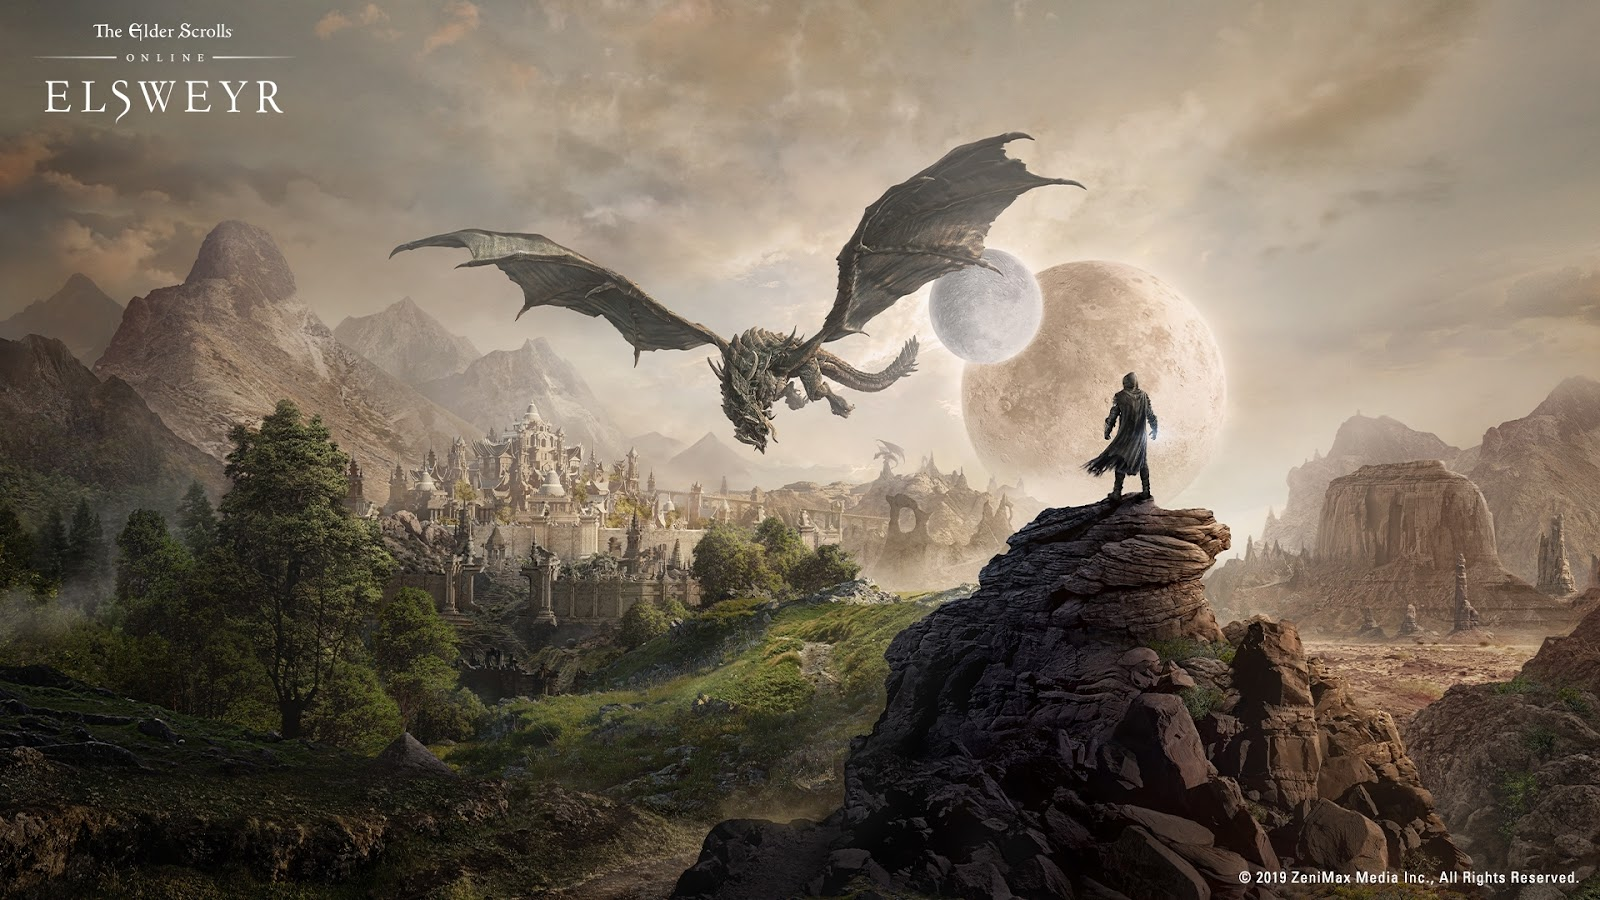 Why The Elder Scrolls Online is better than World of Warcraft